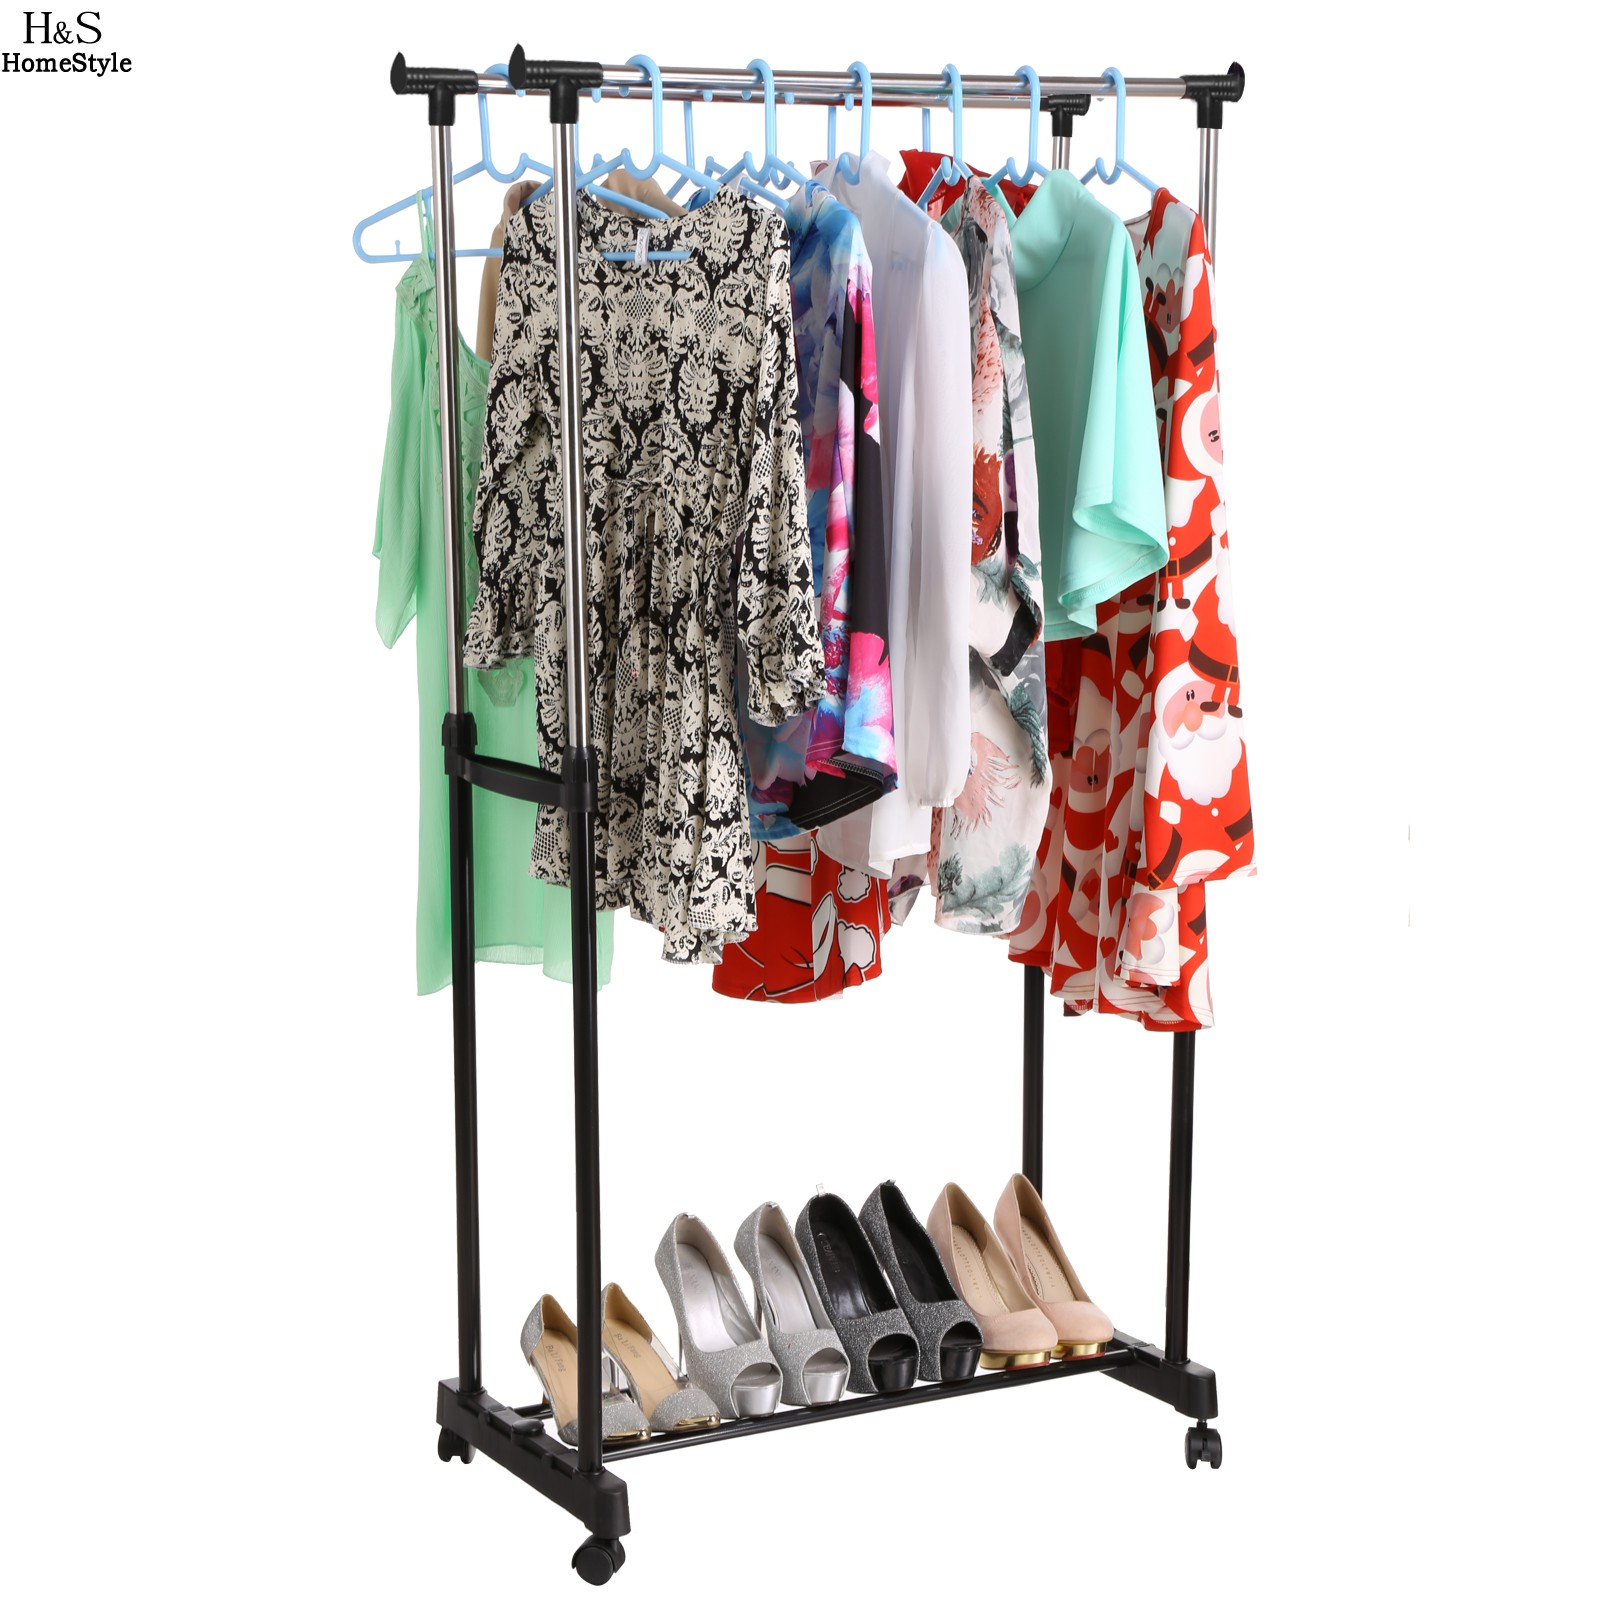 Portable Adjustable Clothing Racks Double Clothes Garment <font><b>Drying</b></font> Hanging Racks Hangers With Castors and Shoe Rack N20A